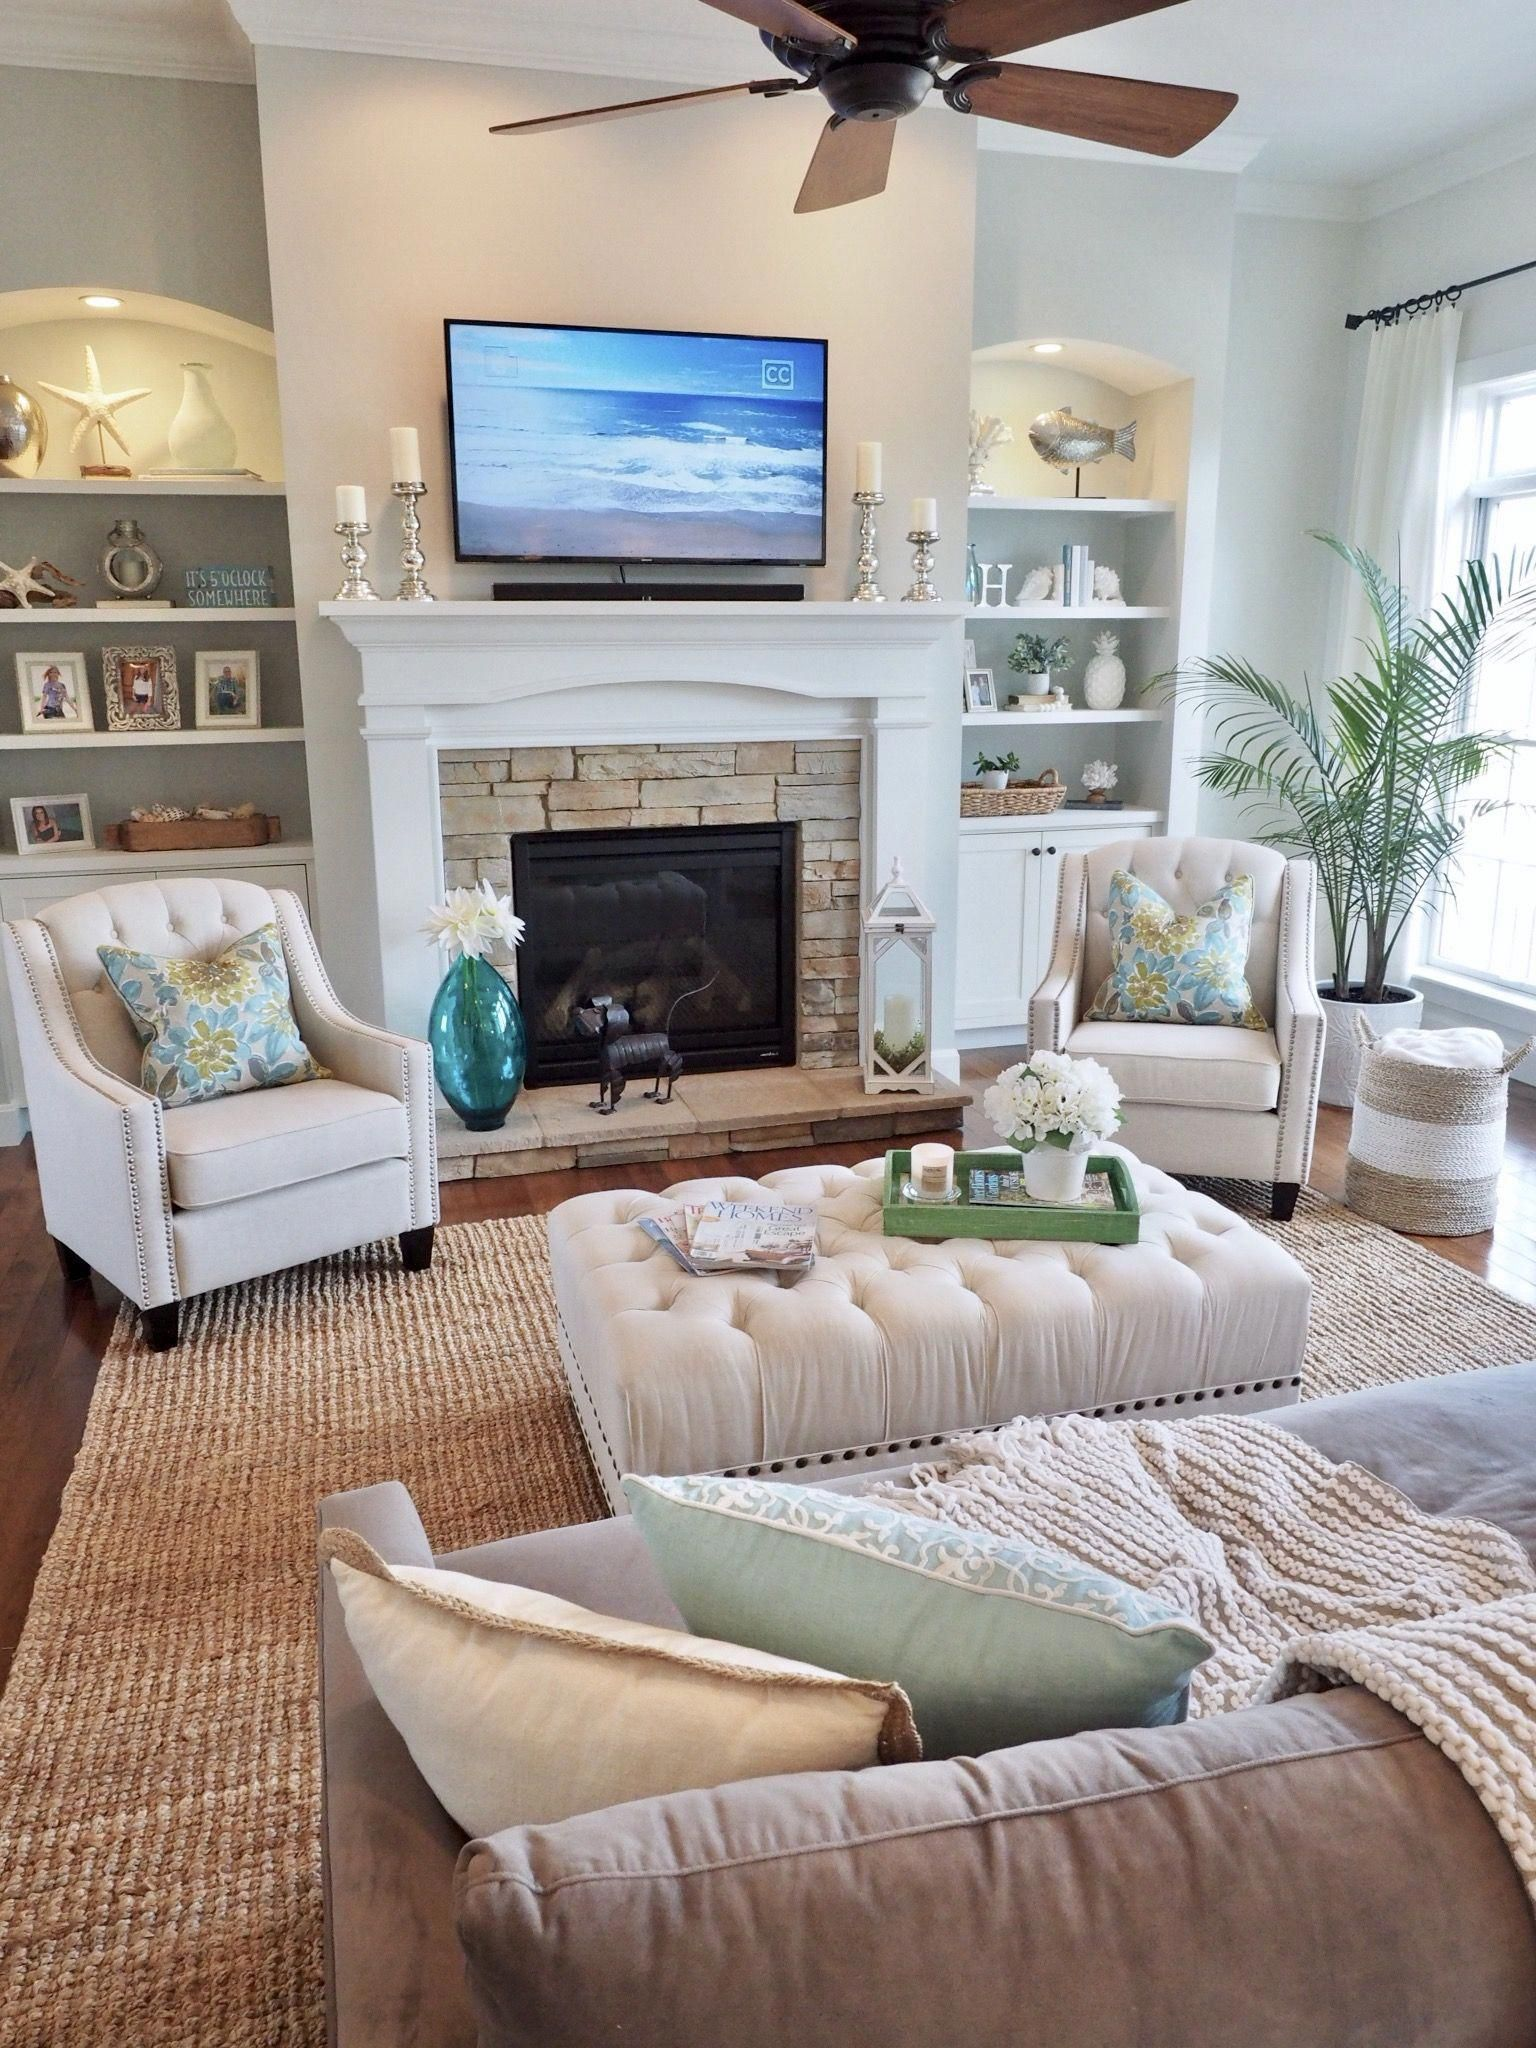 31+ Gray living room sets near me ideas in 2021